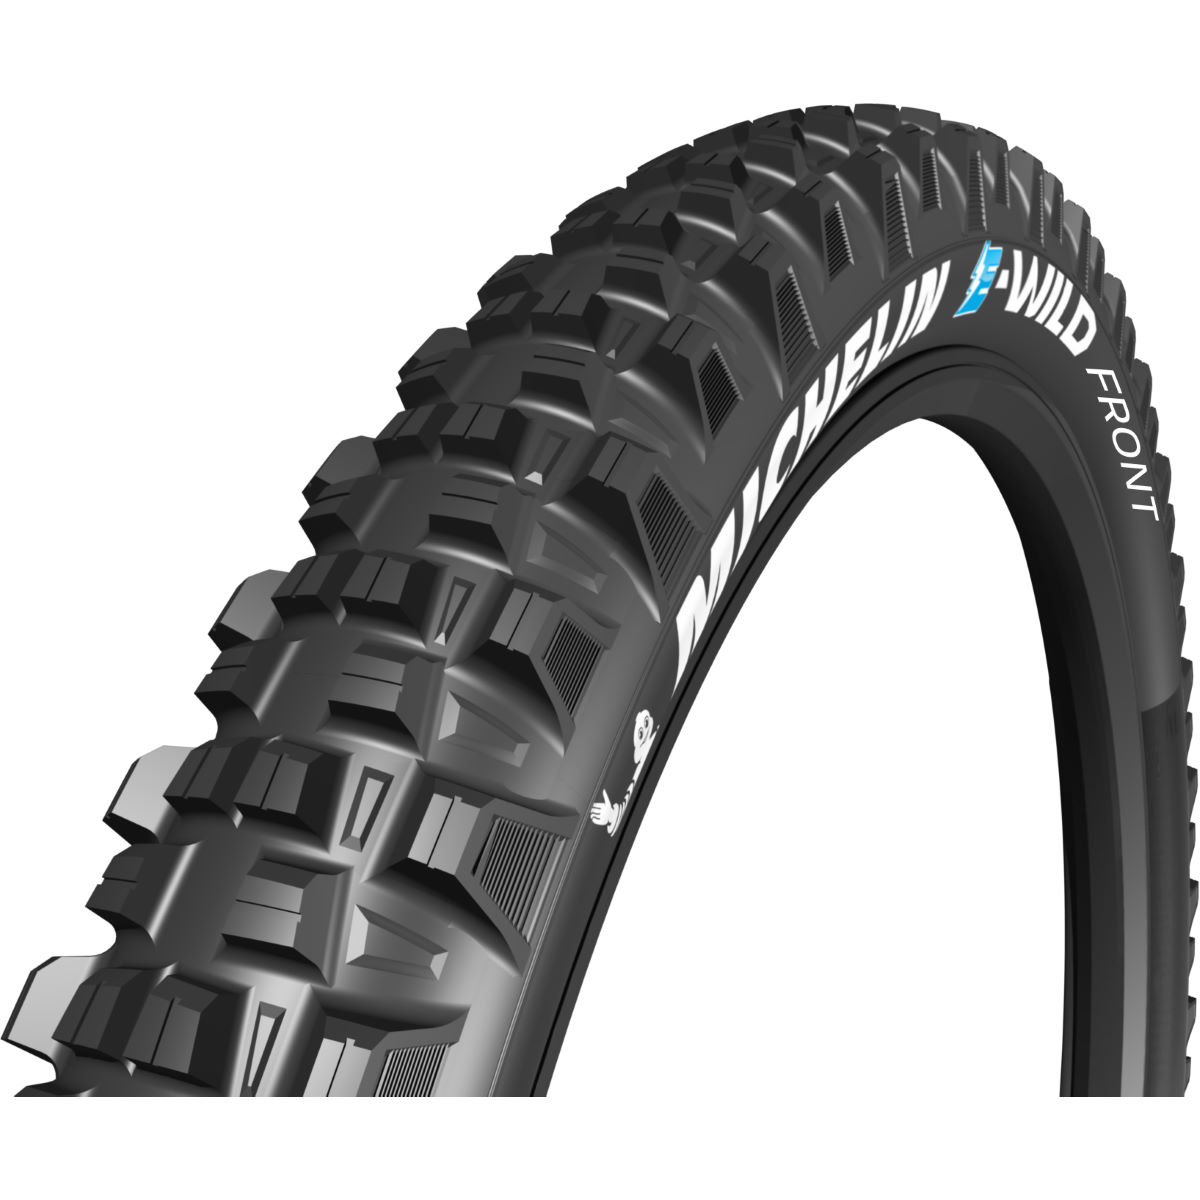 MICHELIN Michelin E-Wild Gum-X TLR Enduro Front TS Tyre   Tyres